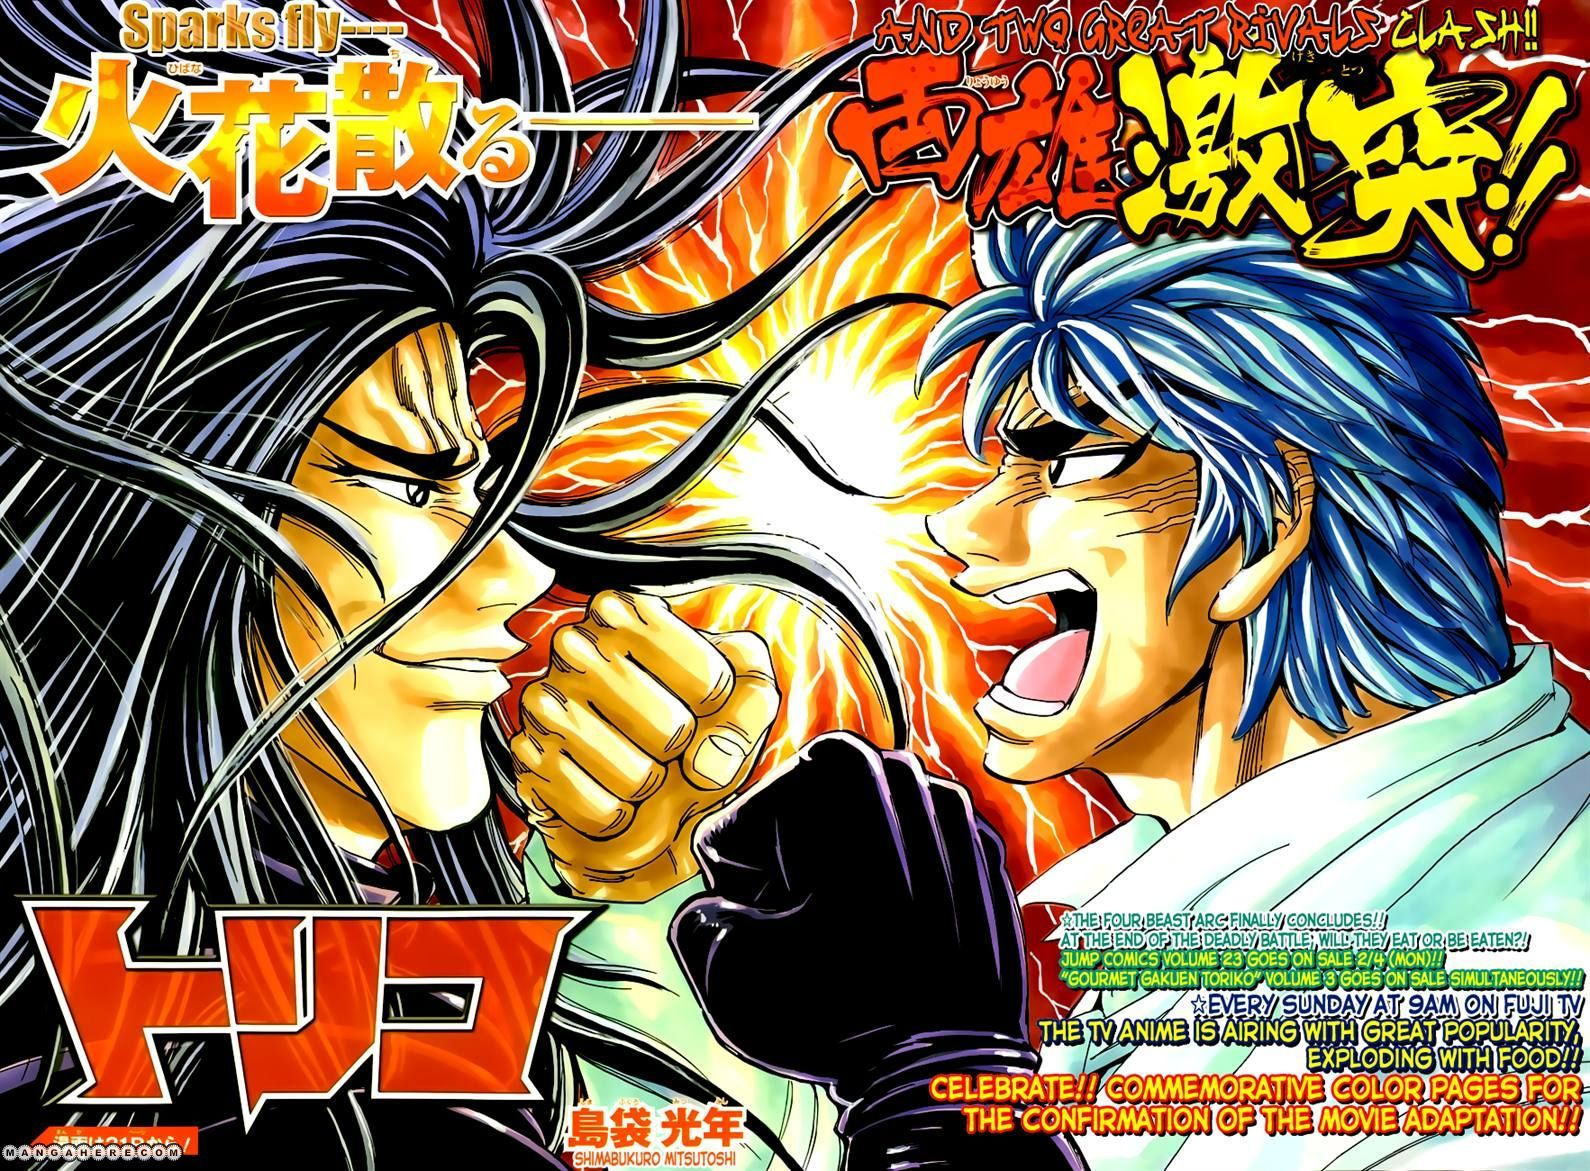 Toriko Wallpaper Read Toriko Manga Online At Mangagrounds Toriko Anime And Manga Forums